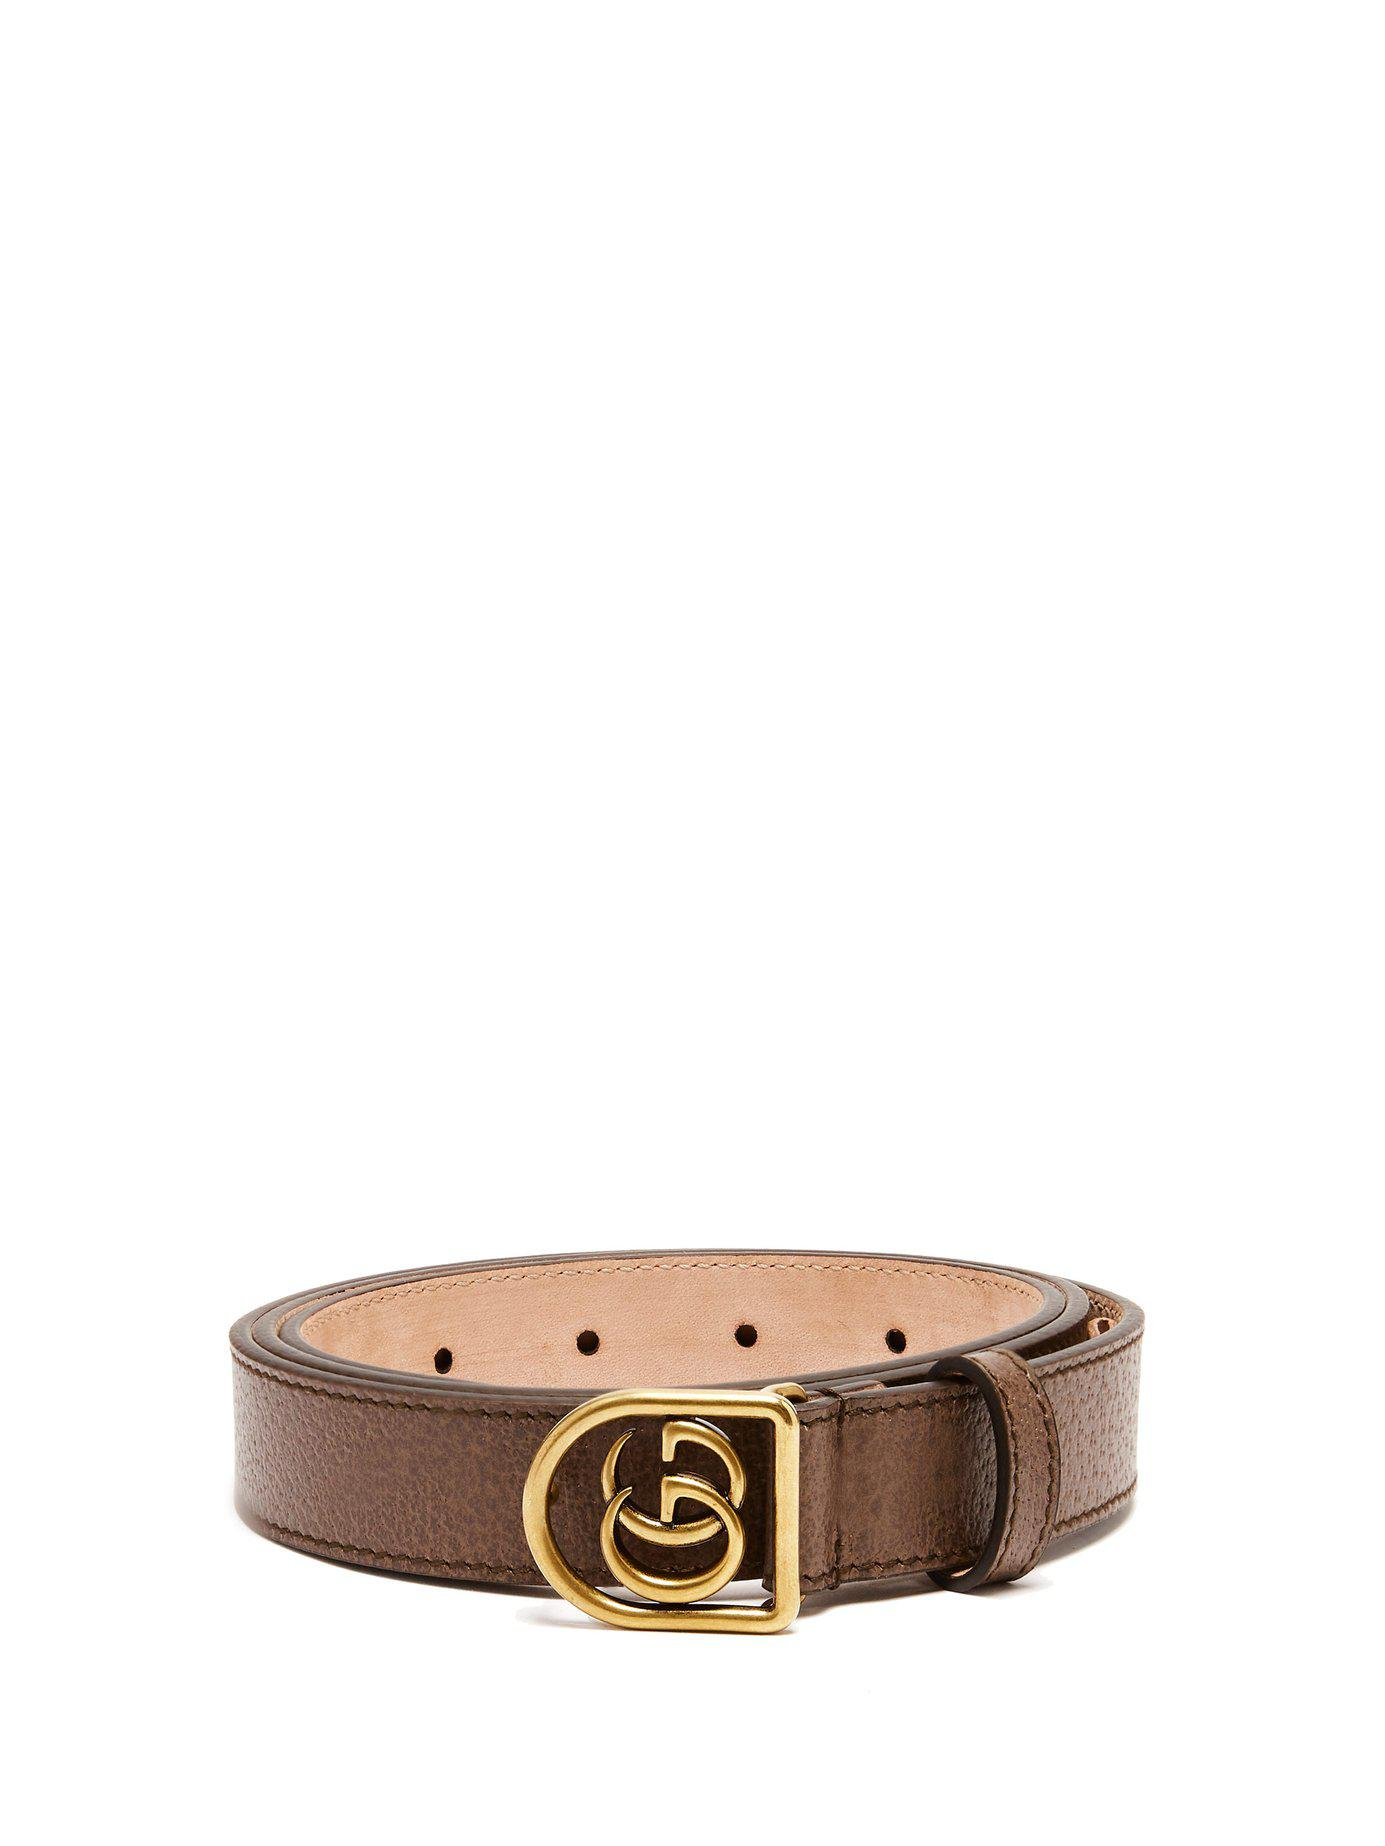 2c9a747f324 Gucci Leather Belt With Double G Buckle in Brown for Men - Save 53 ...